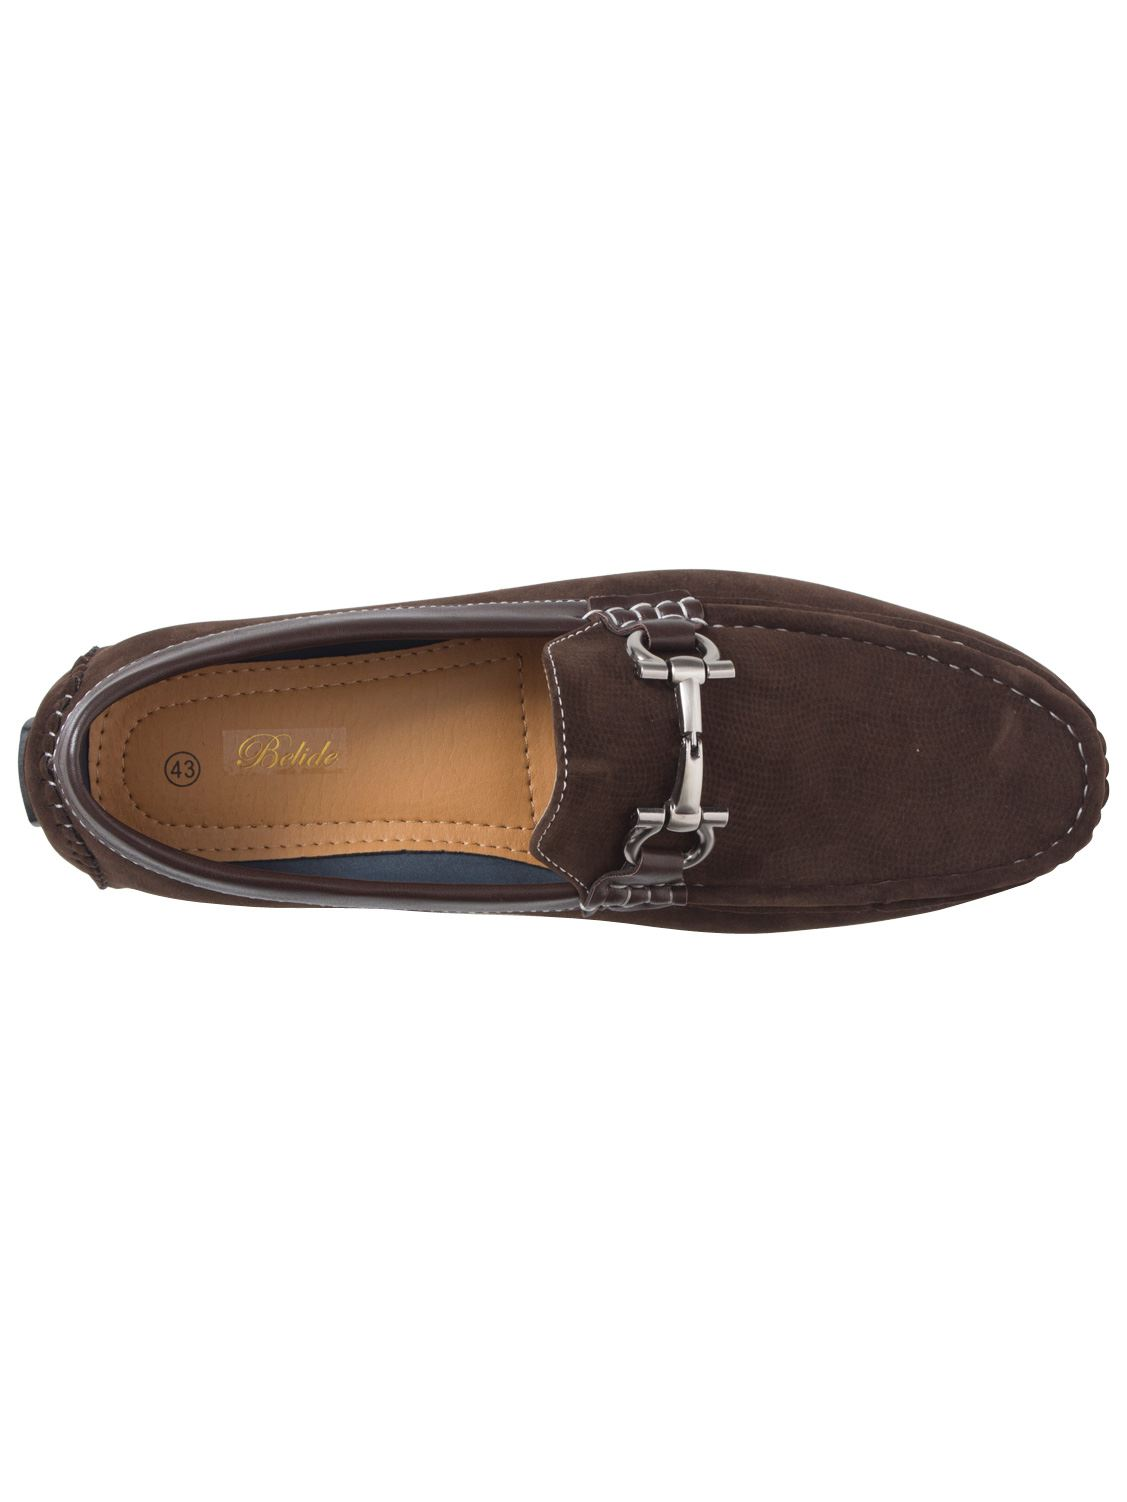 Mens-Slip-Ons-Shoes-Boat-Deck-Driving-Smart-Buckle-Moccasins-Suede-Look-Loafers thumbnail 79